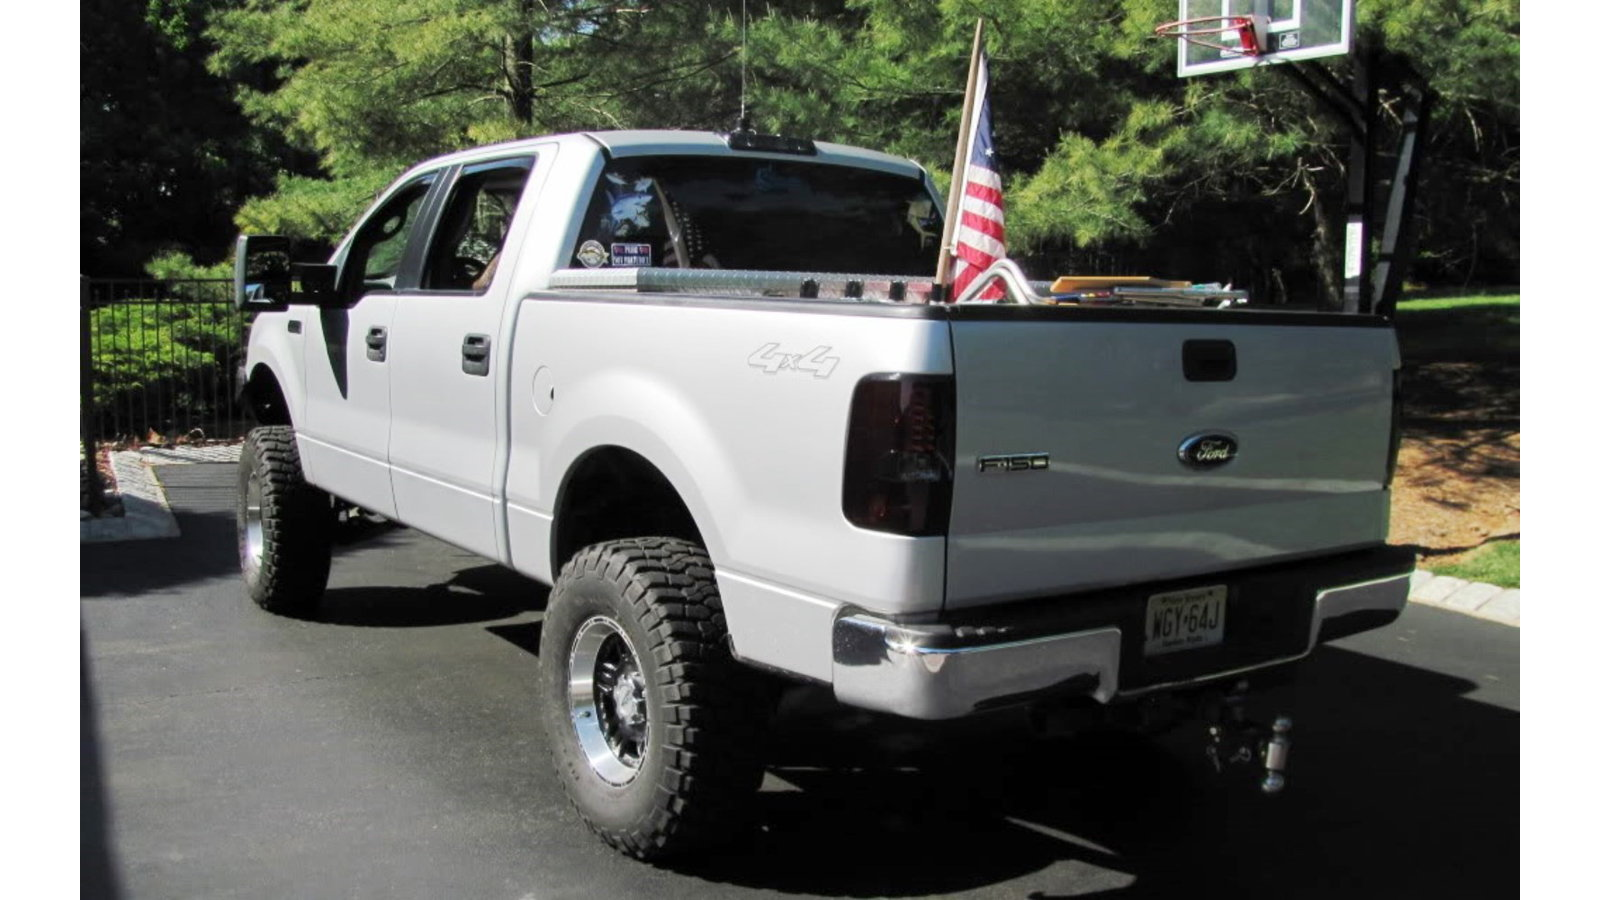 Ford trucks, Independence day, 4th of July